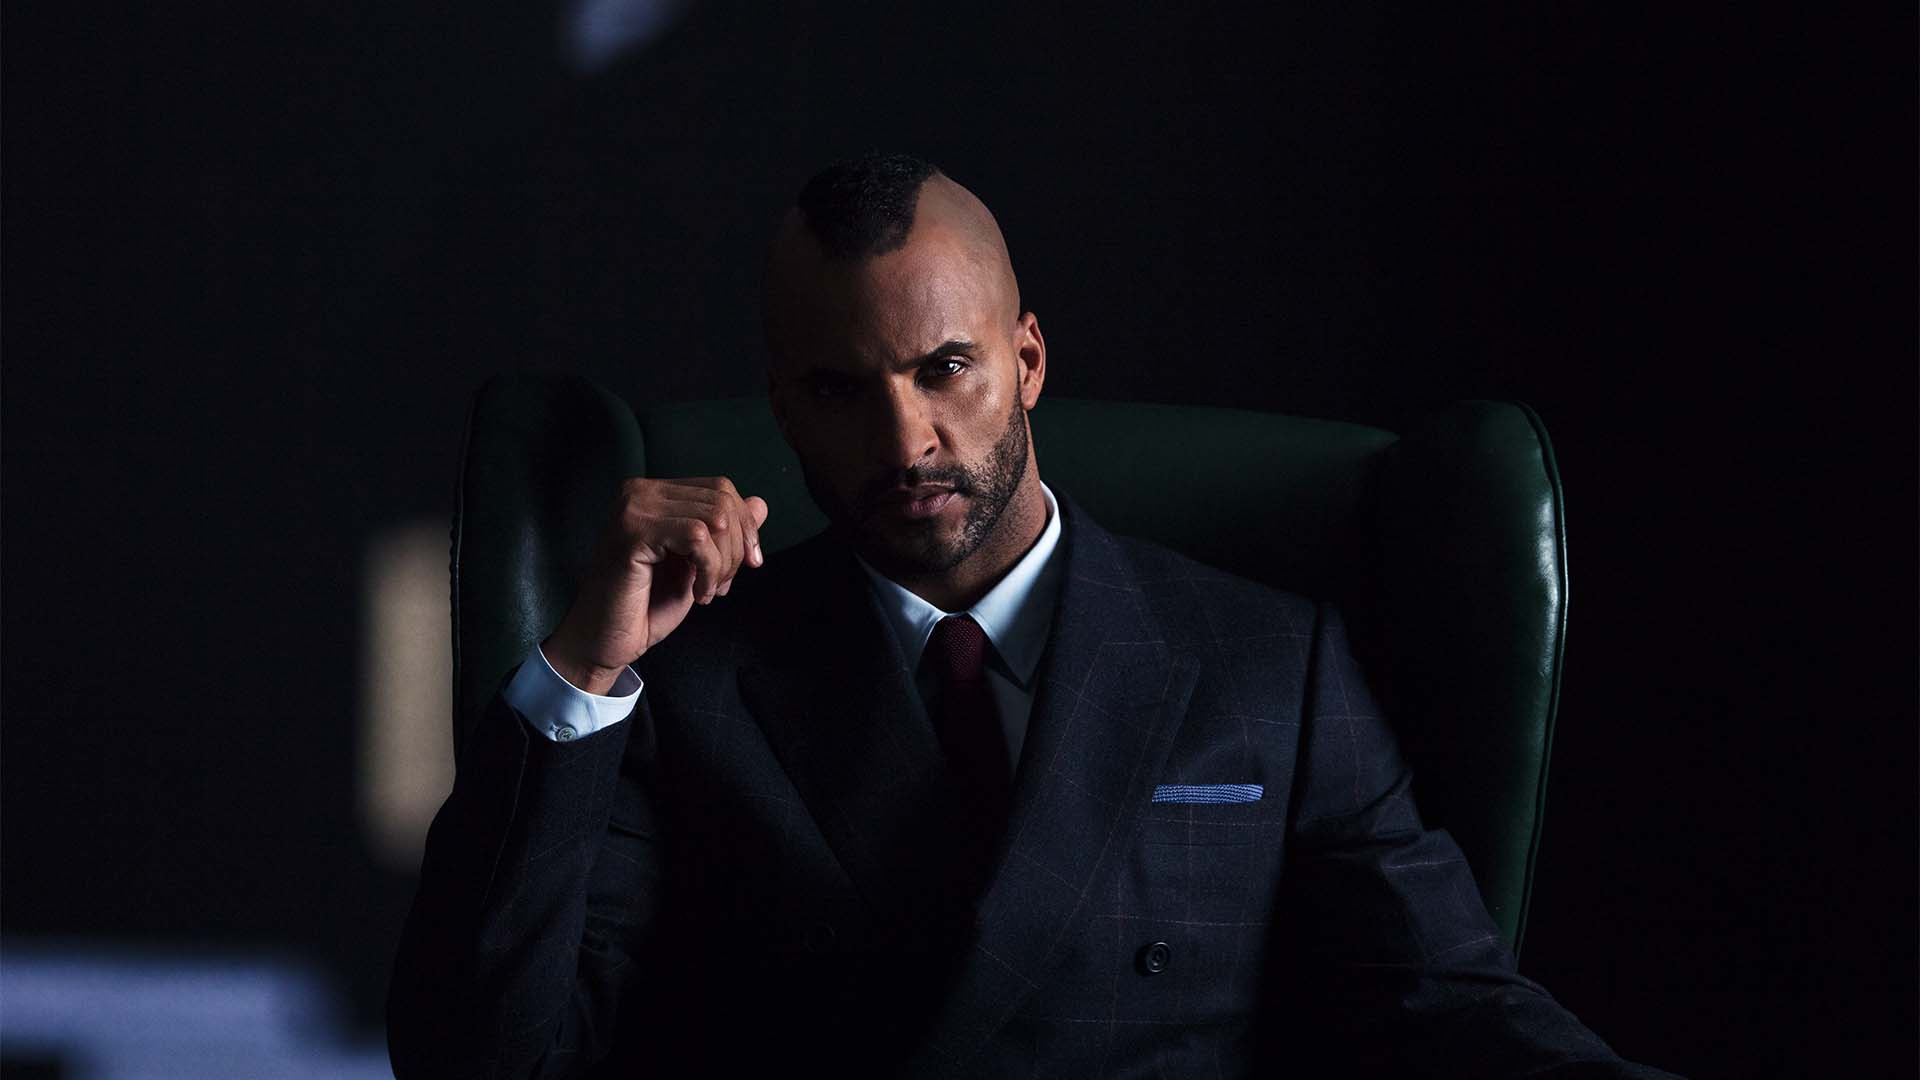 Ricky Whittle, star of American Gods poses in a suit and macintosh